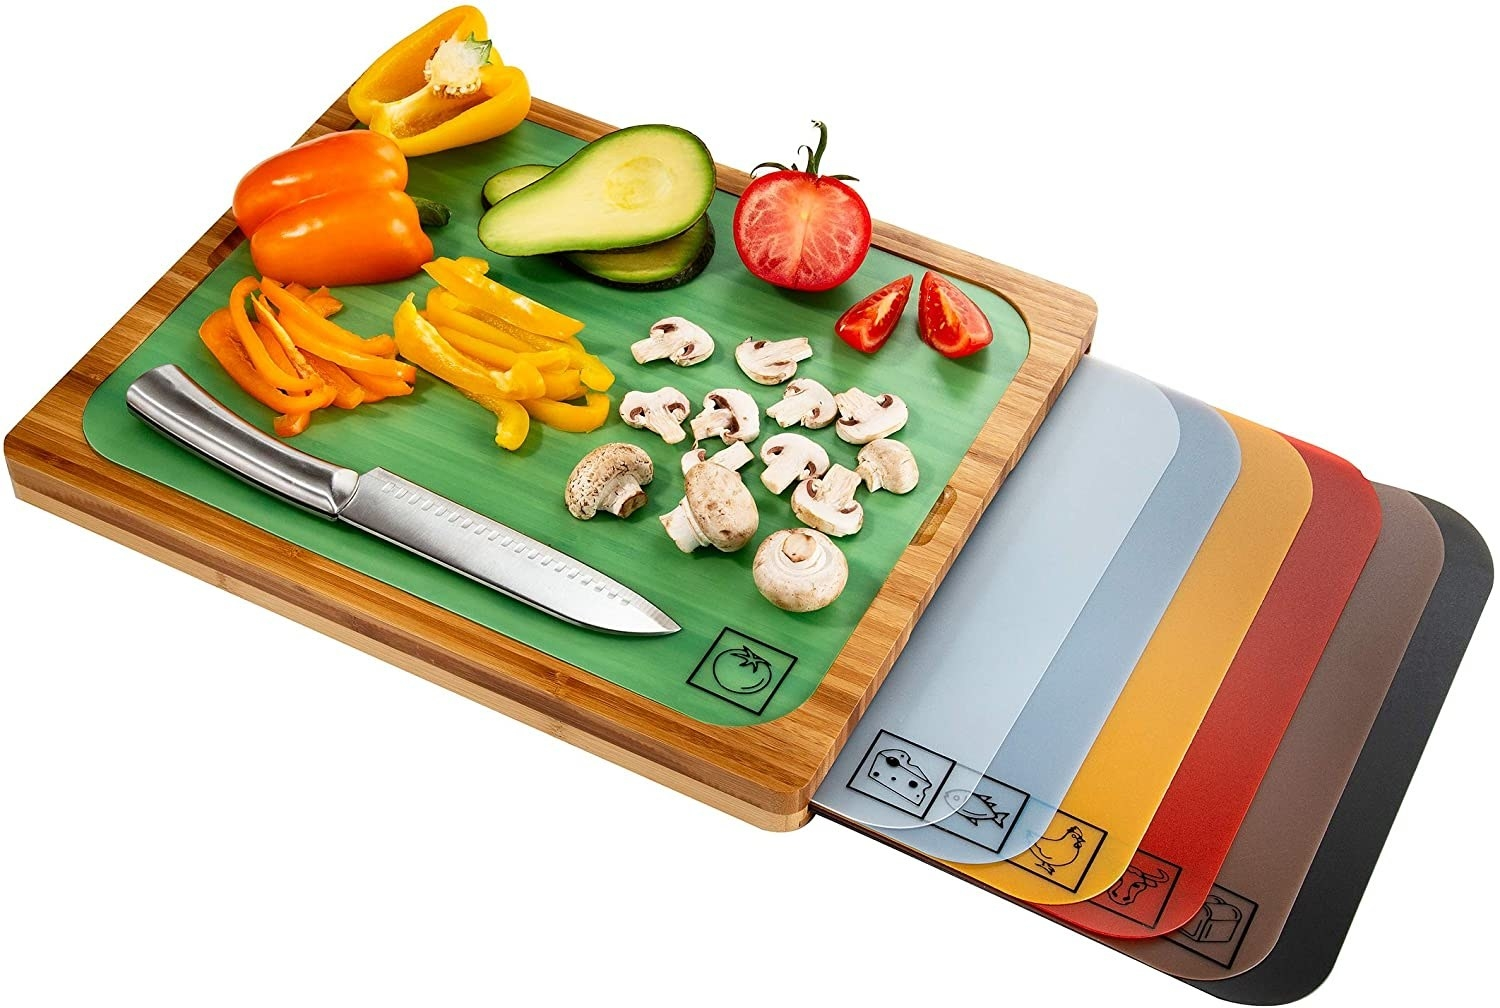 The cutting board with seven interchangeable colored mats